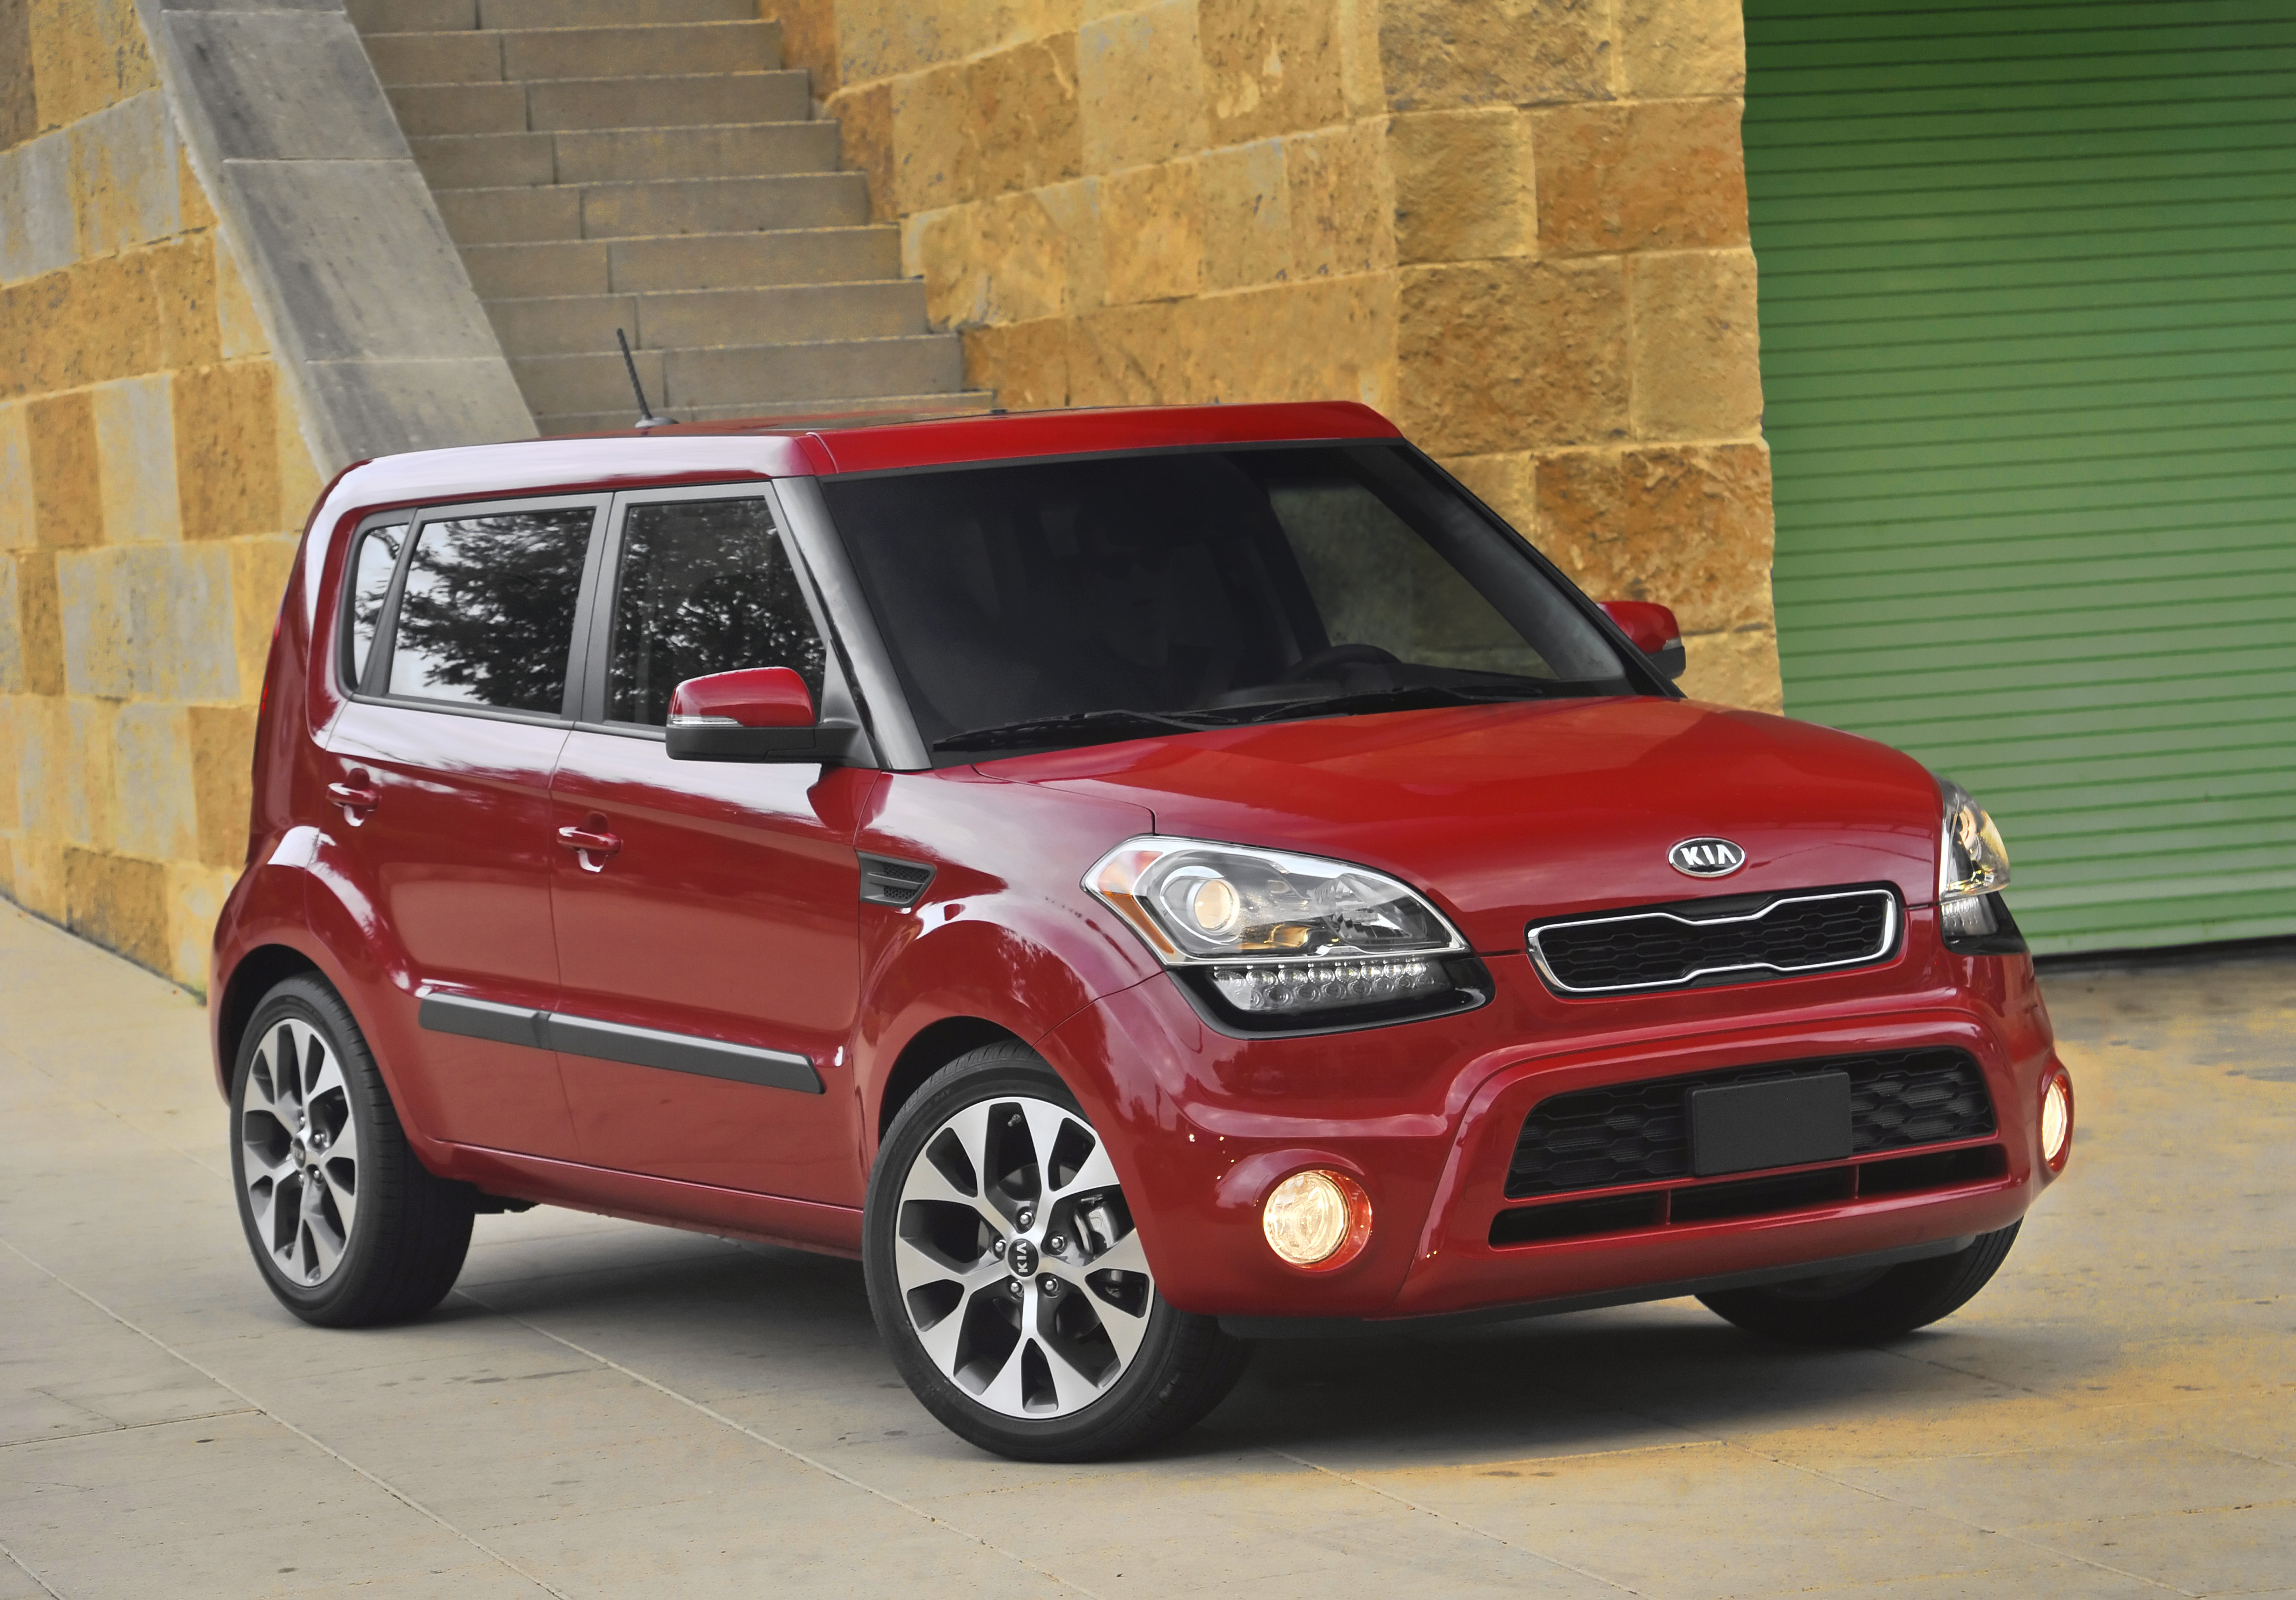 2013 Kia Soul Review, Ratings, Specs, Prices, And Photos